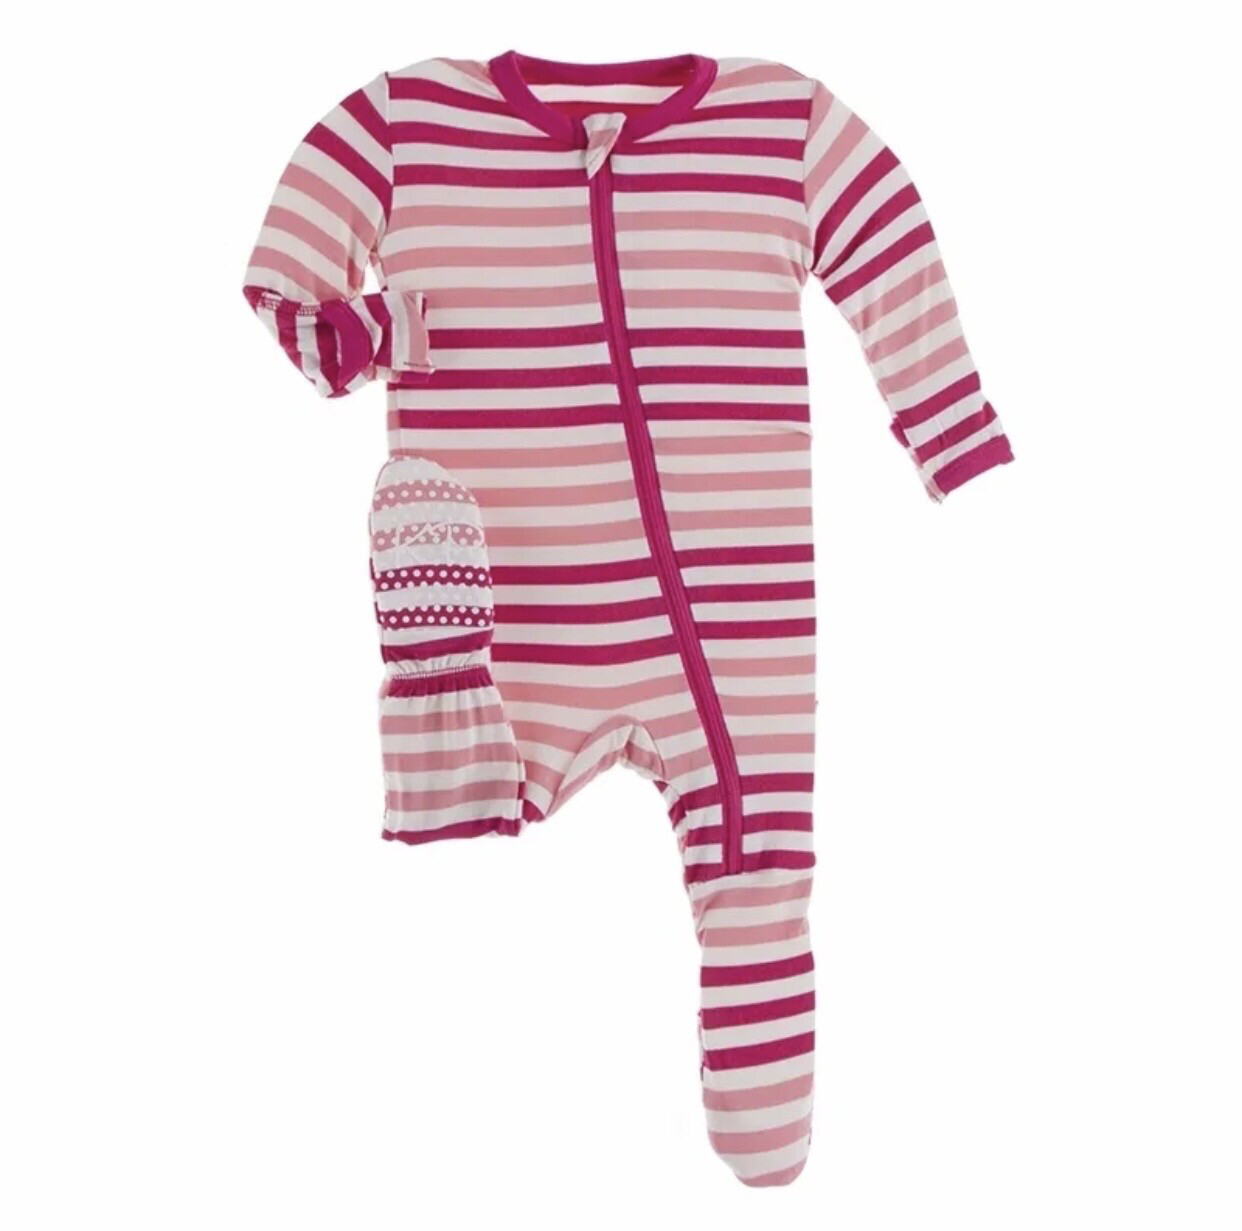 KicKee Pants Ruffled Pink Stripe Footie NB